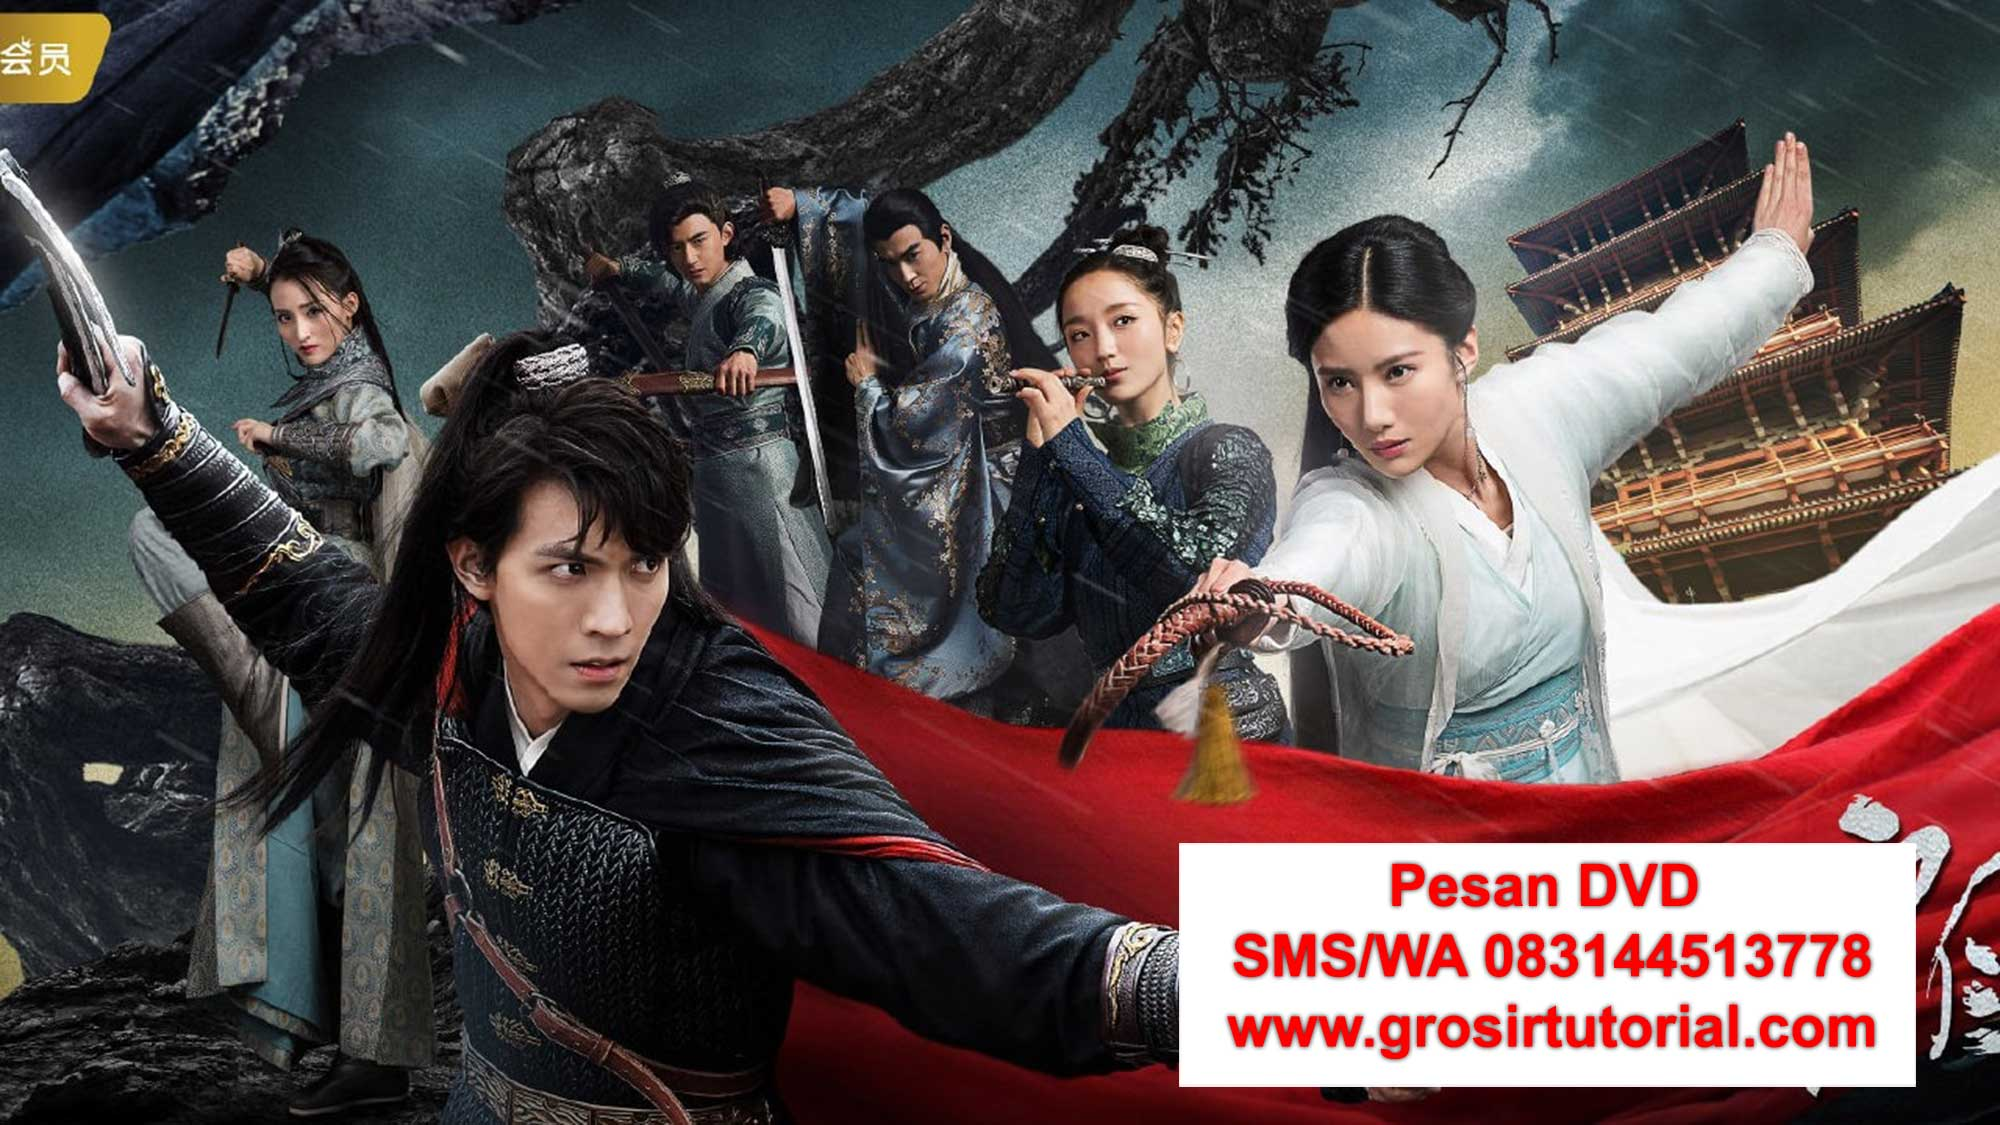 Cari-DVD-Silat-Mandarin-The-Lost-Swordship